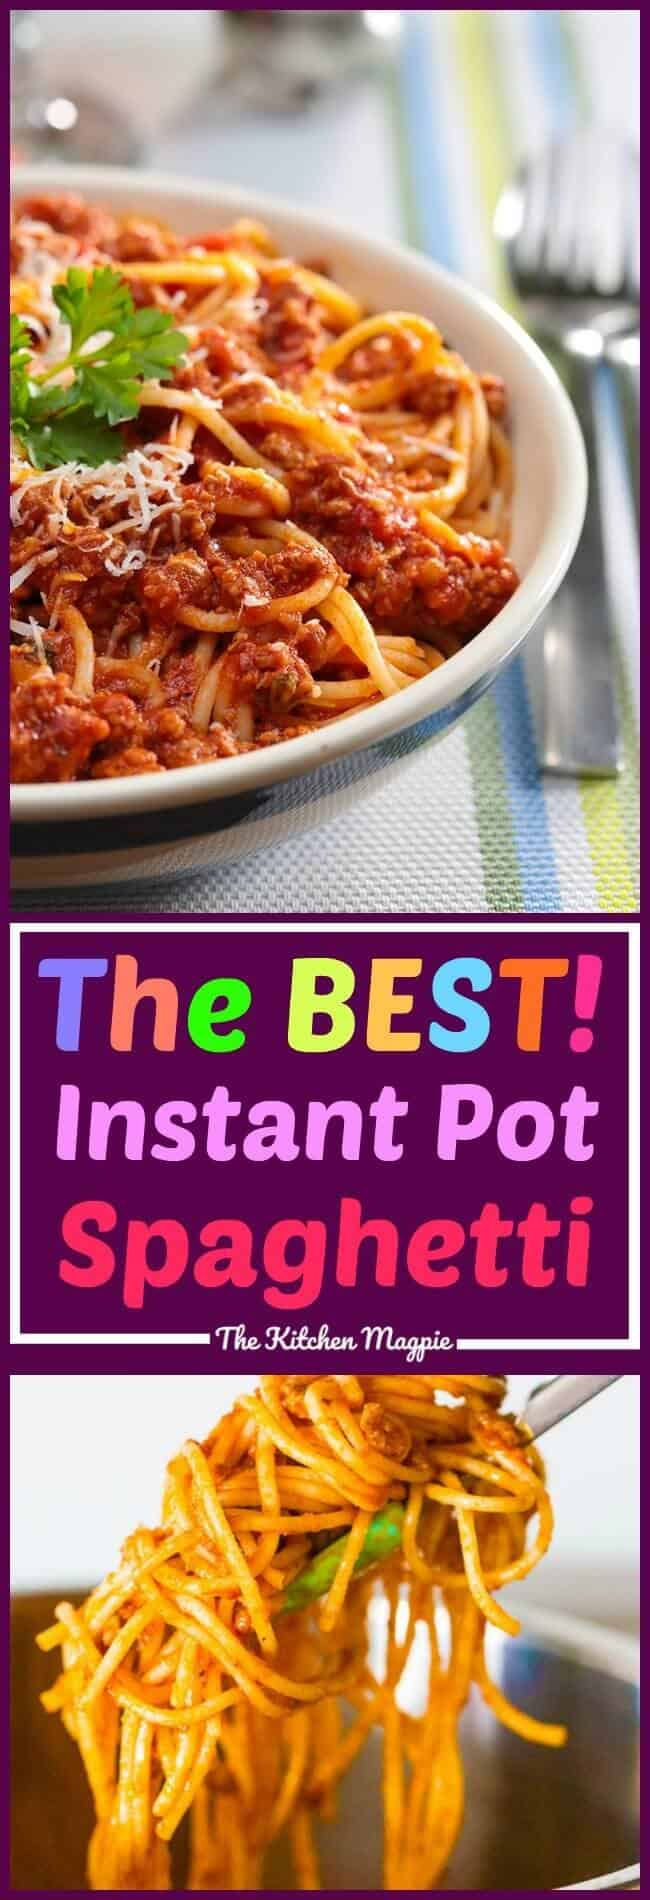 My Instant Pot Spaghetti is the best ever! It has one (or two!) secret ingredients that make ALL the difference! #recipe #instantpot #pressurecooking #spaghetti #supper #dinner